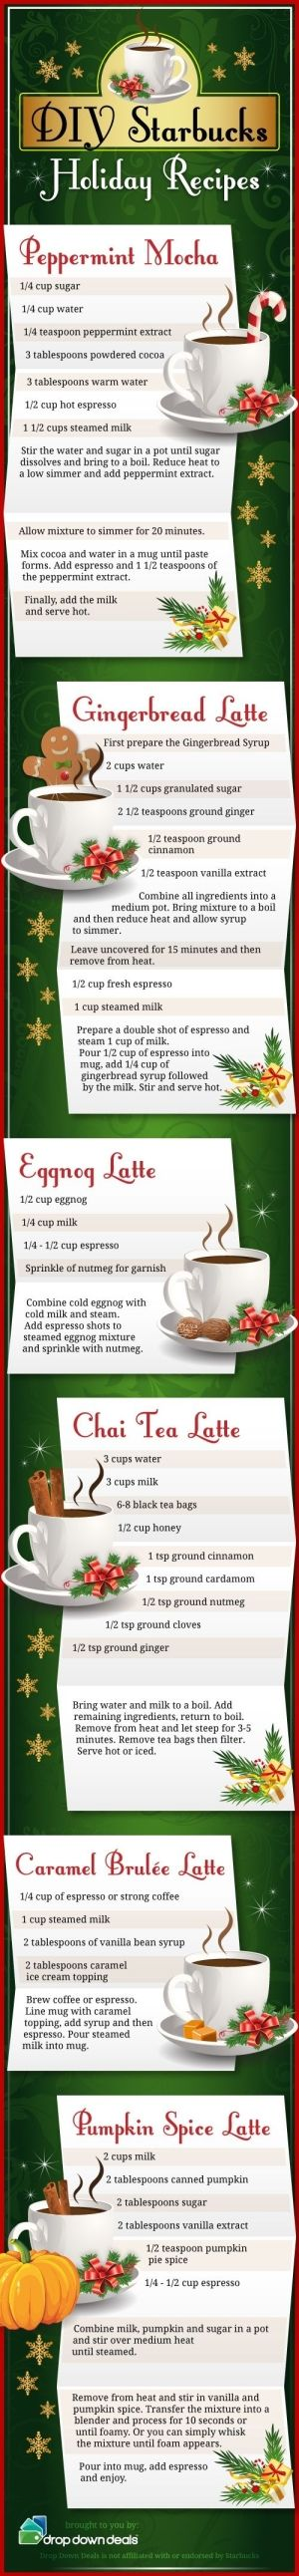 Secret Starbucks Recipes @Brandy Dunn .... this is what we need!! lol